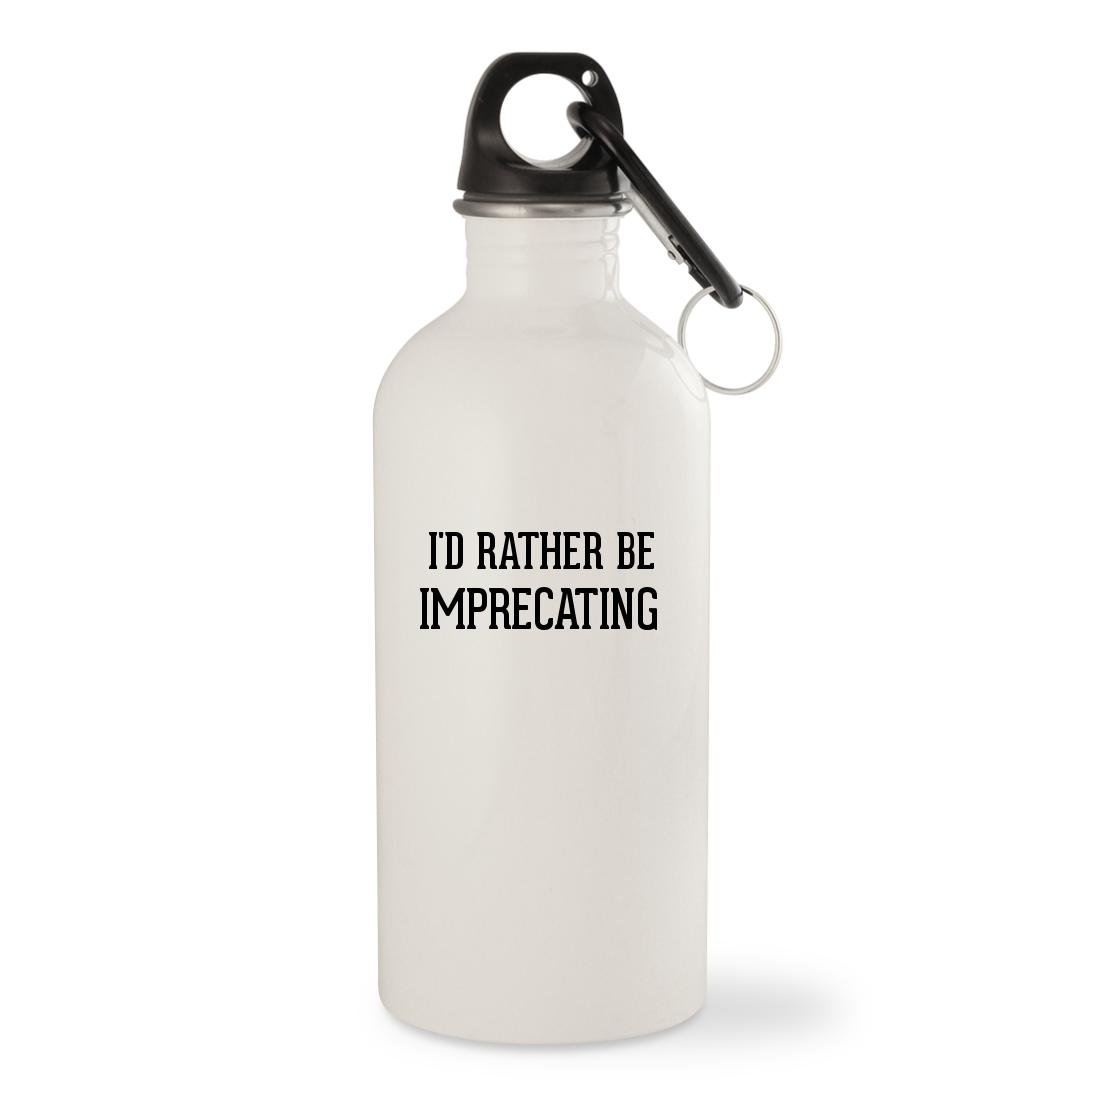 I'd Rather Be IMPRECATING - White 20oz Stainless Steel Water Bottle with Carabiner